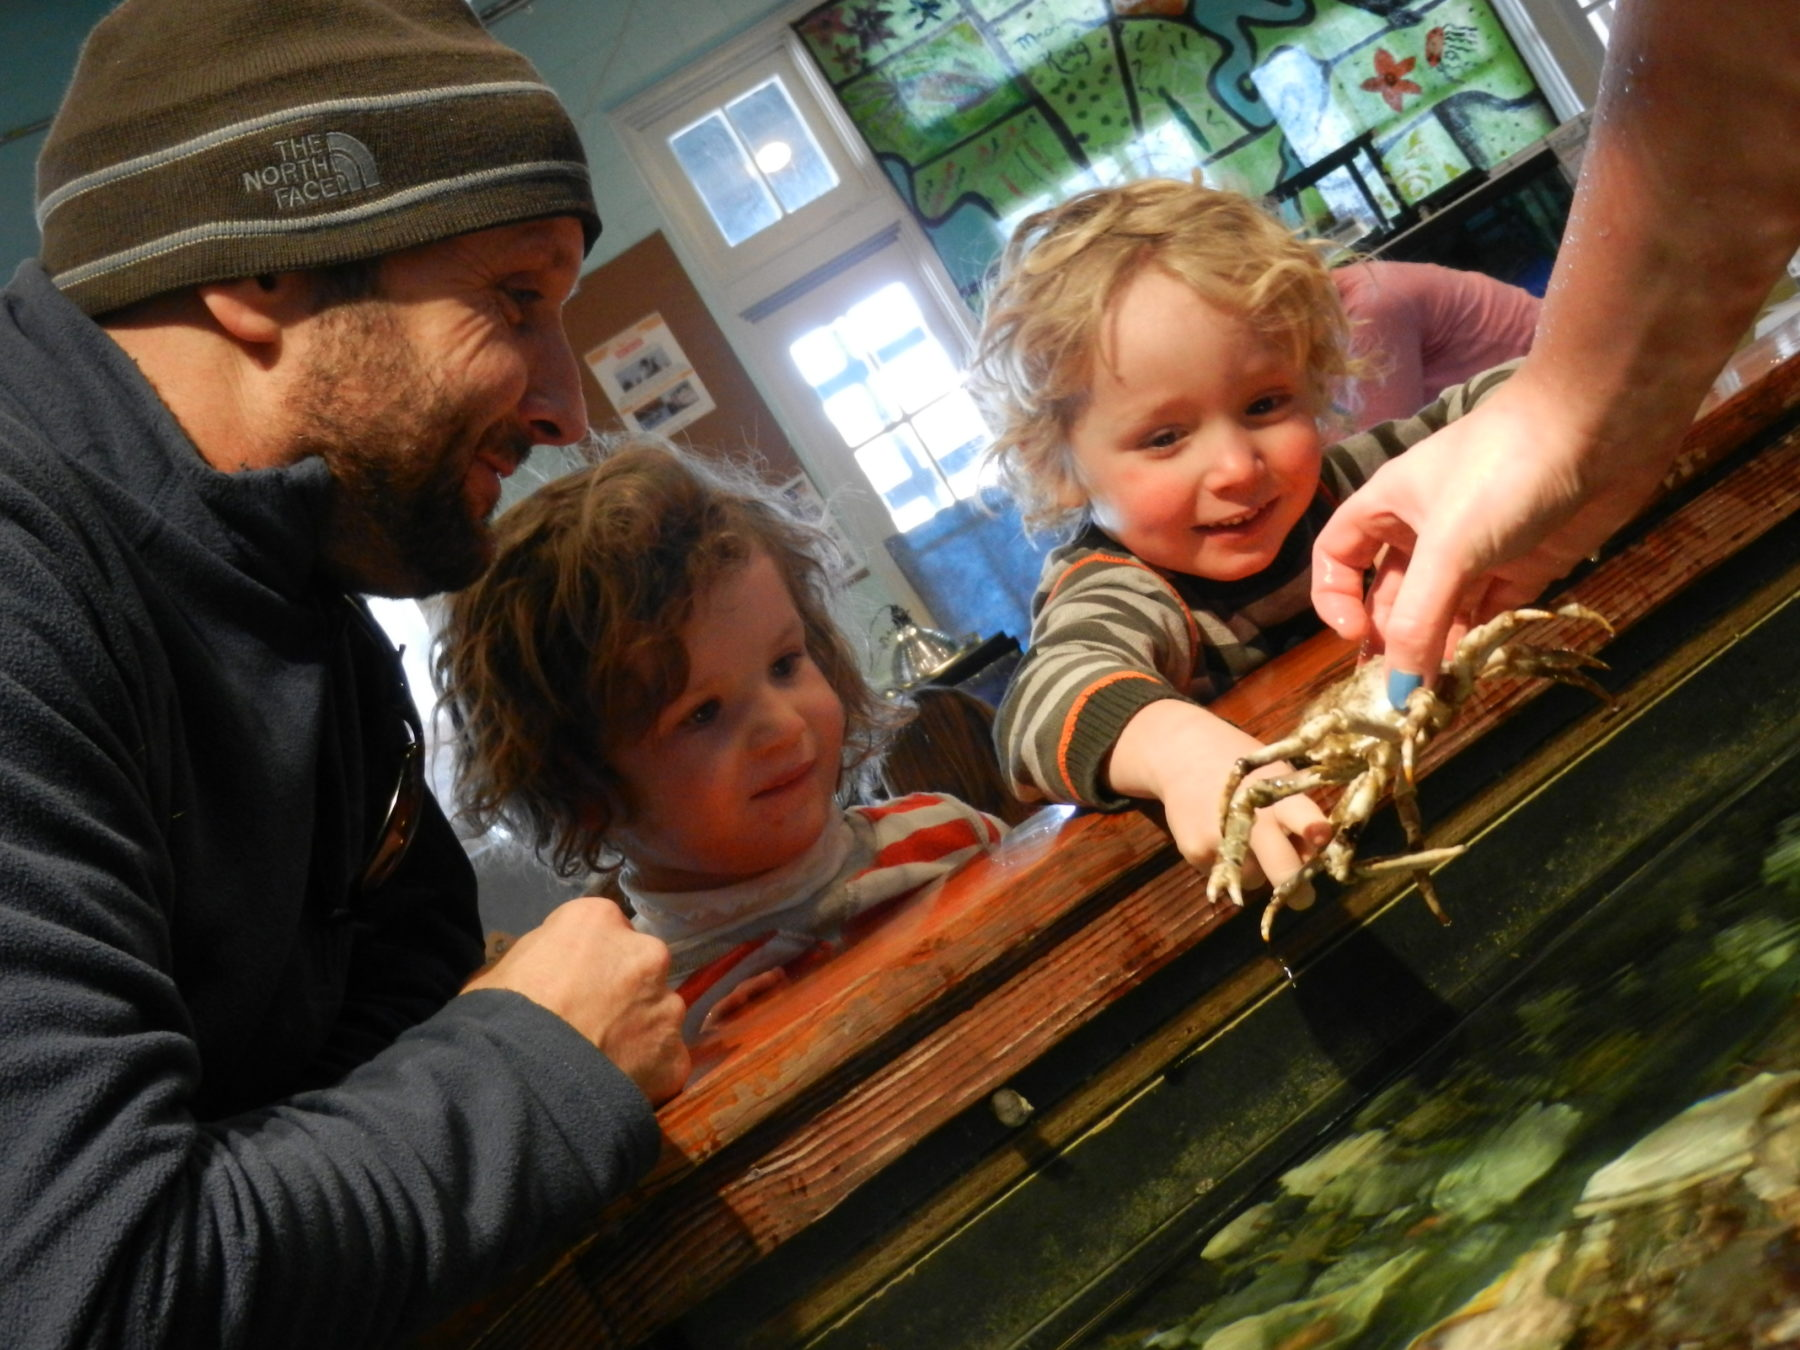 A dad and two kids at the Exploration Center and Aquarium